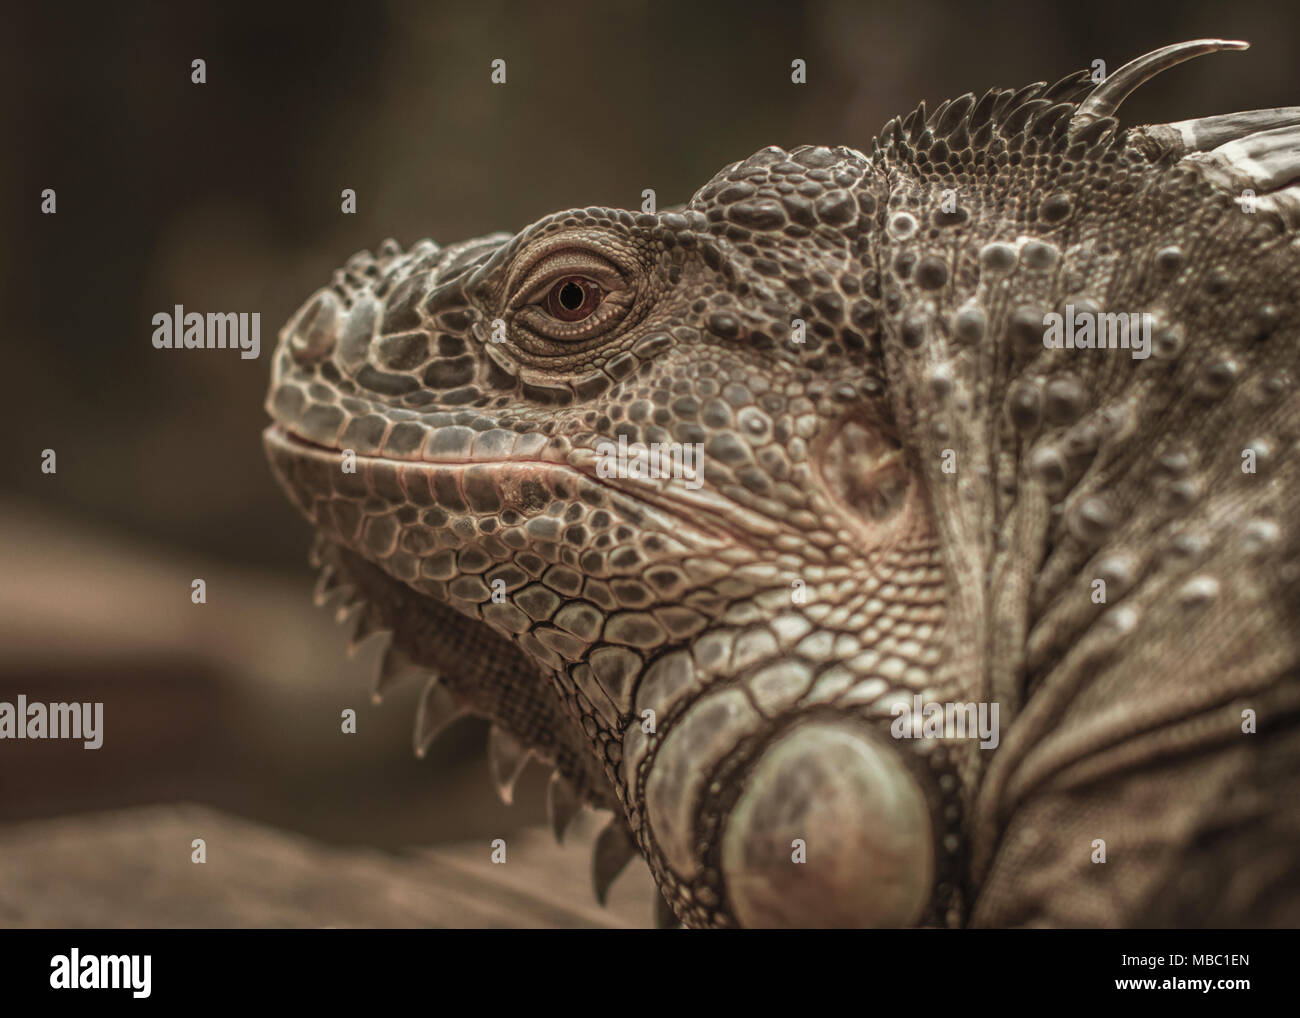 A lovely Iguana enjoy the warm day sun baking and have a nice posed to the camera Stock Photo